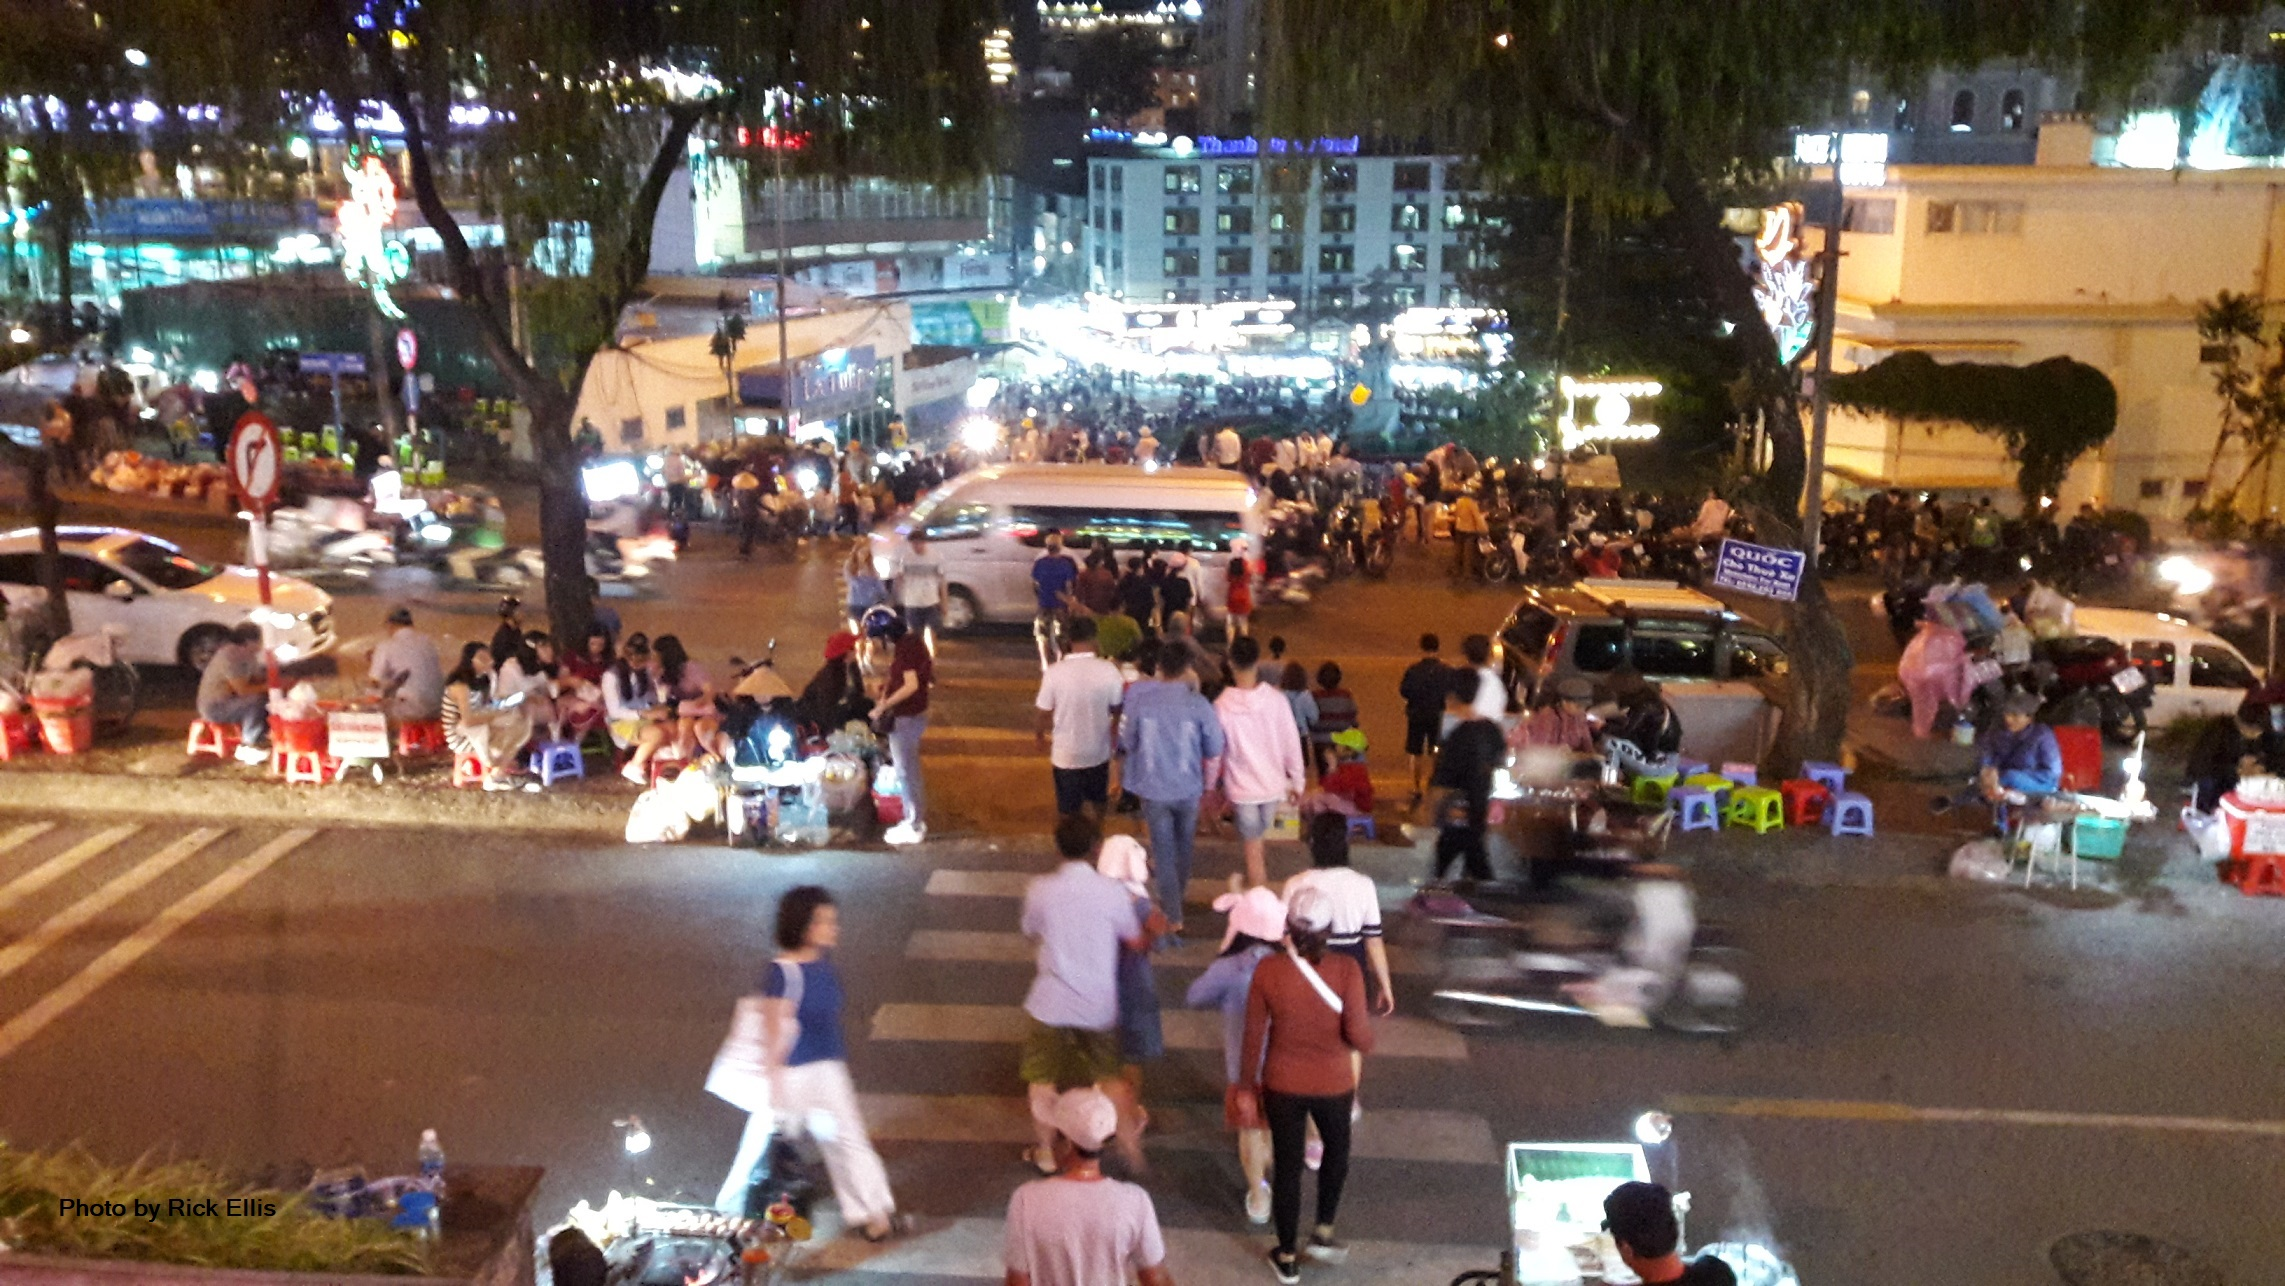 Night market view